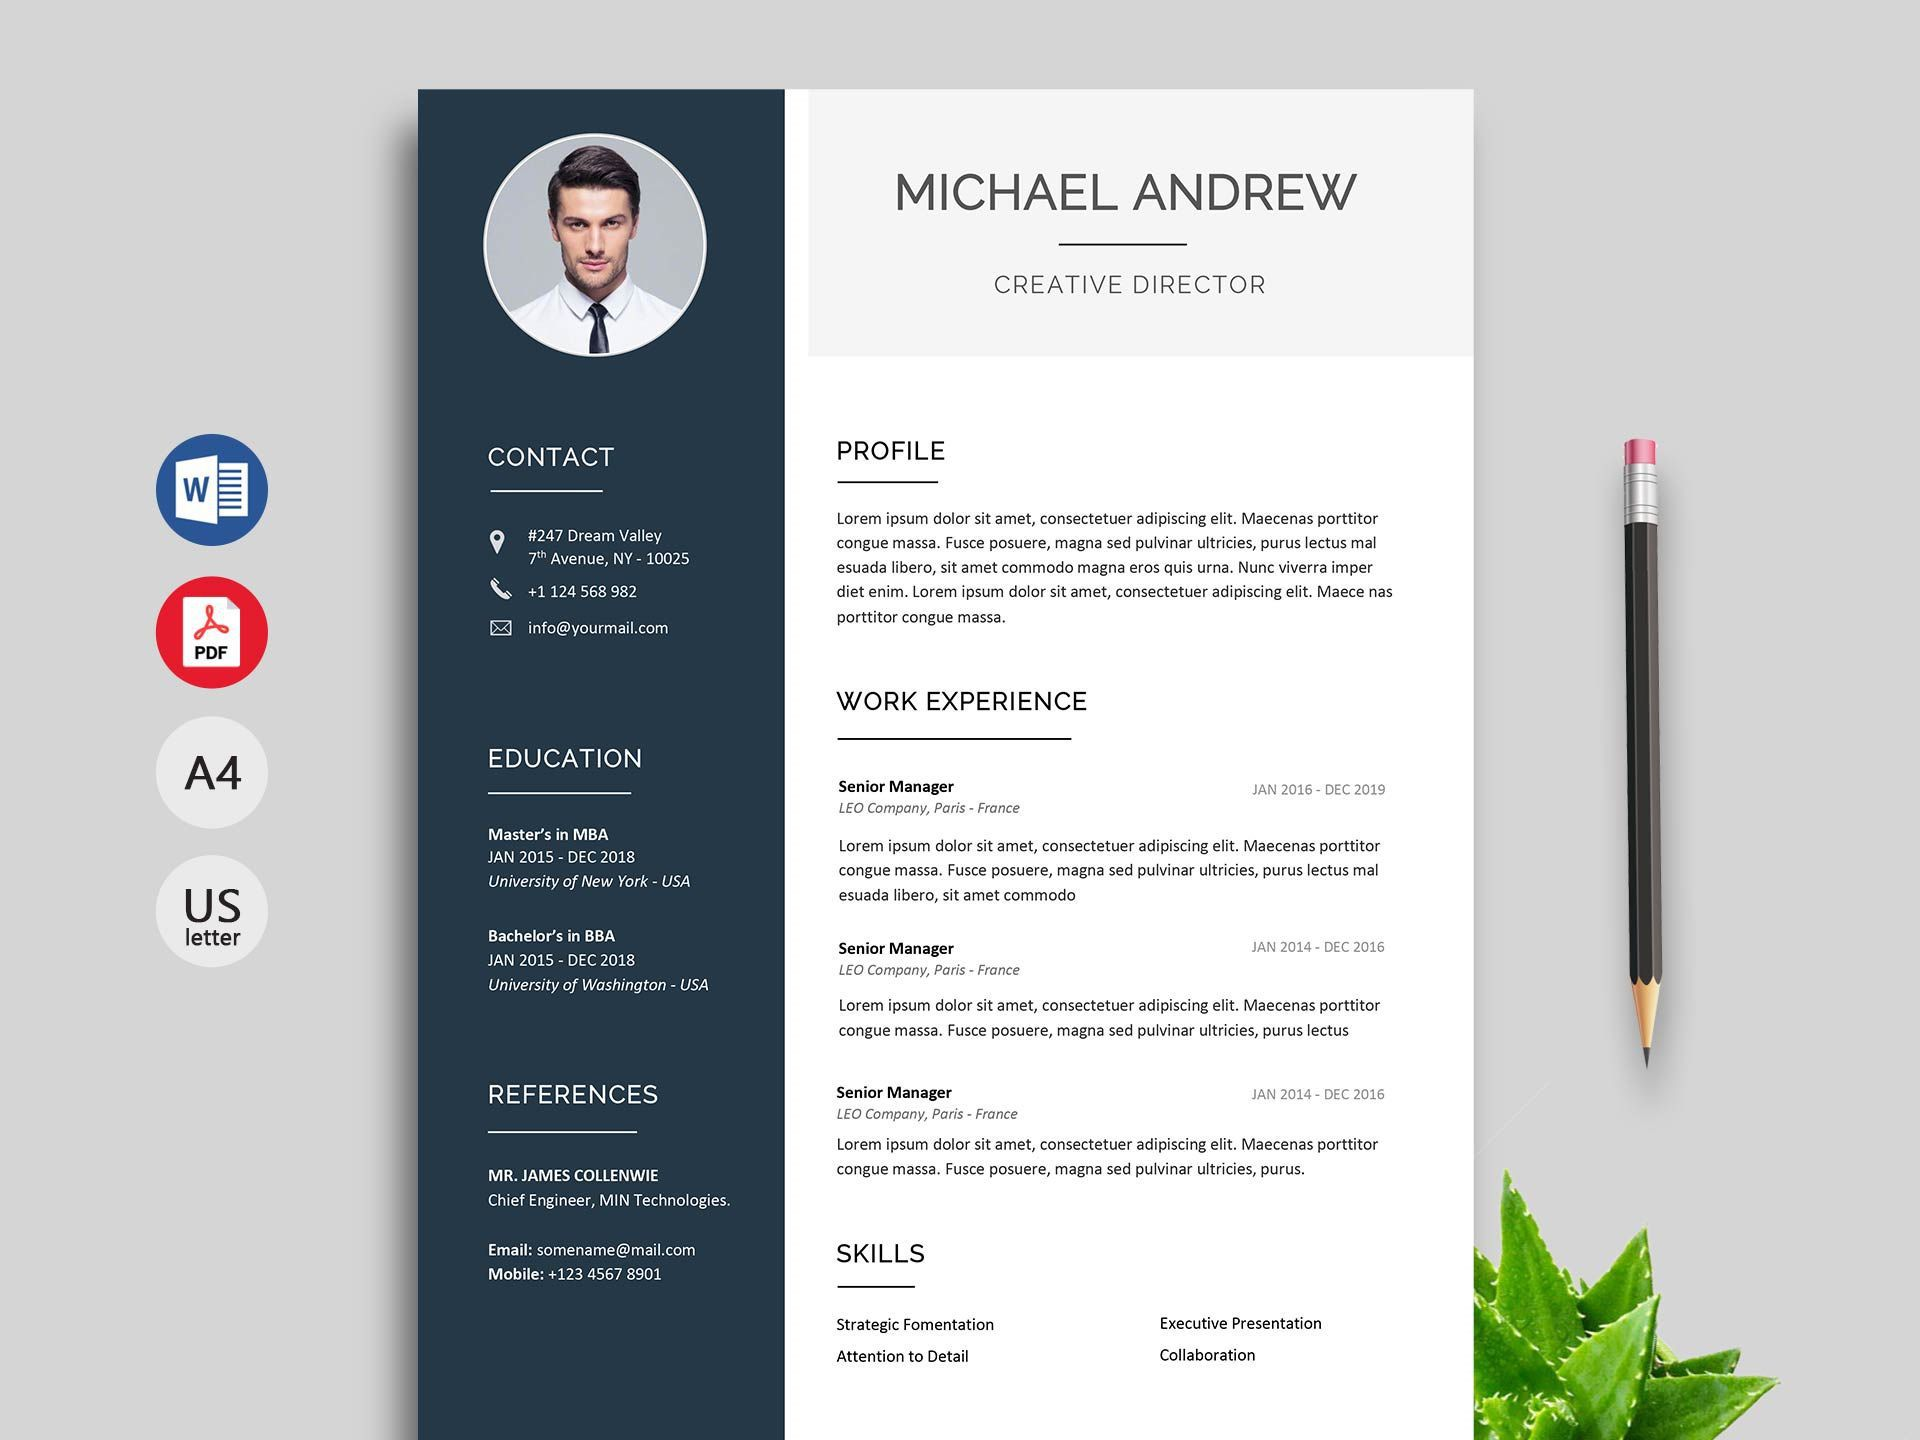 007 Dreaded Professional Resume Template 2018 Free Download Photo Full